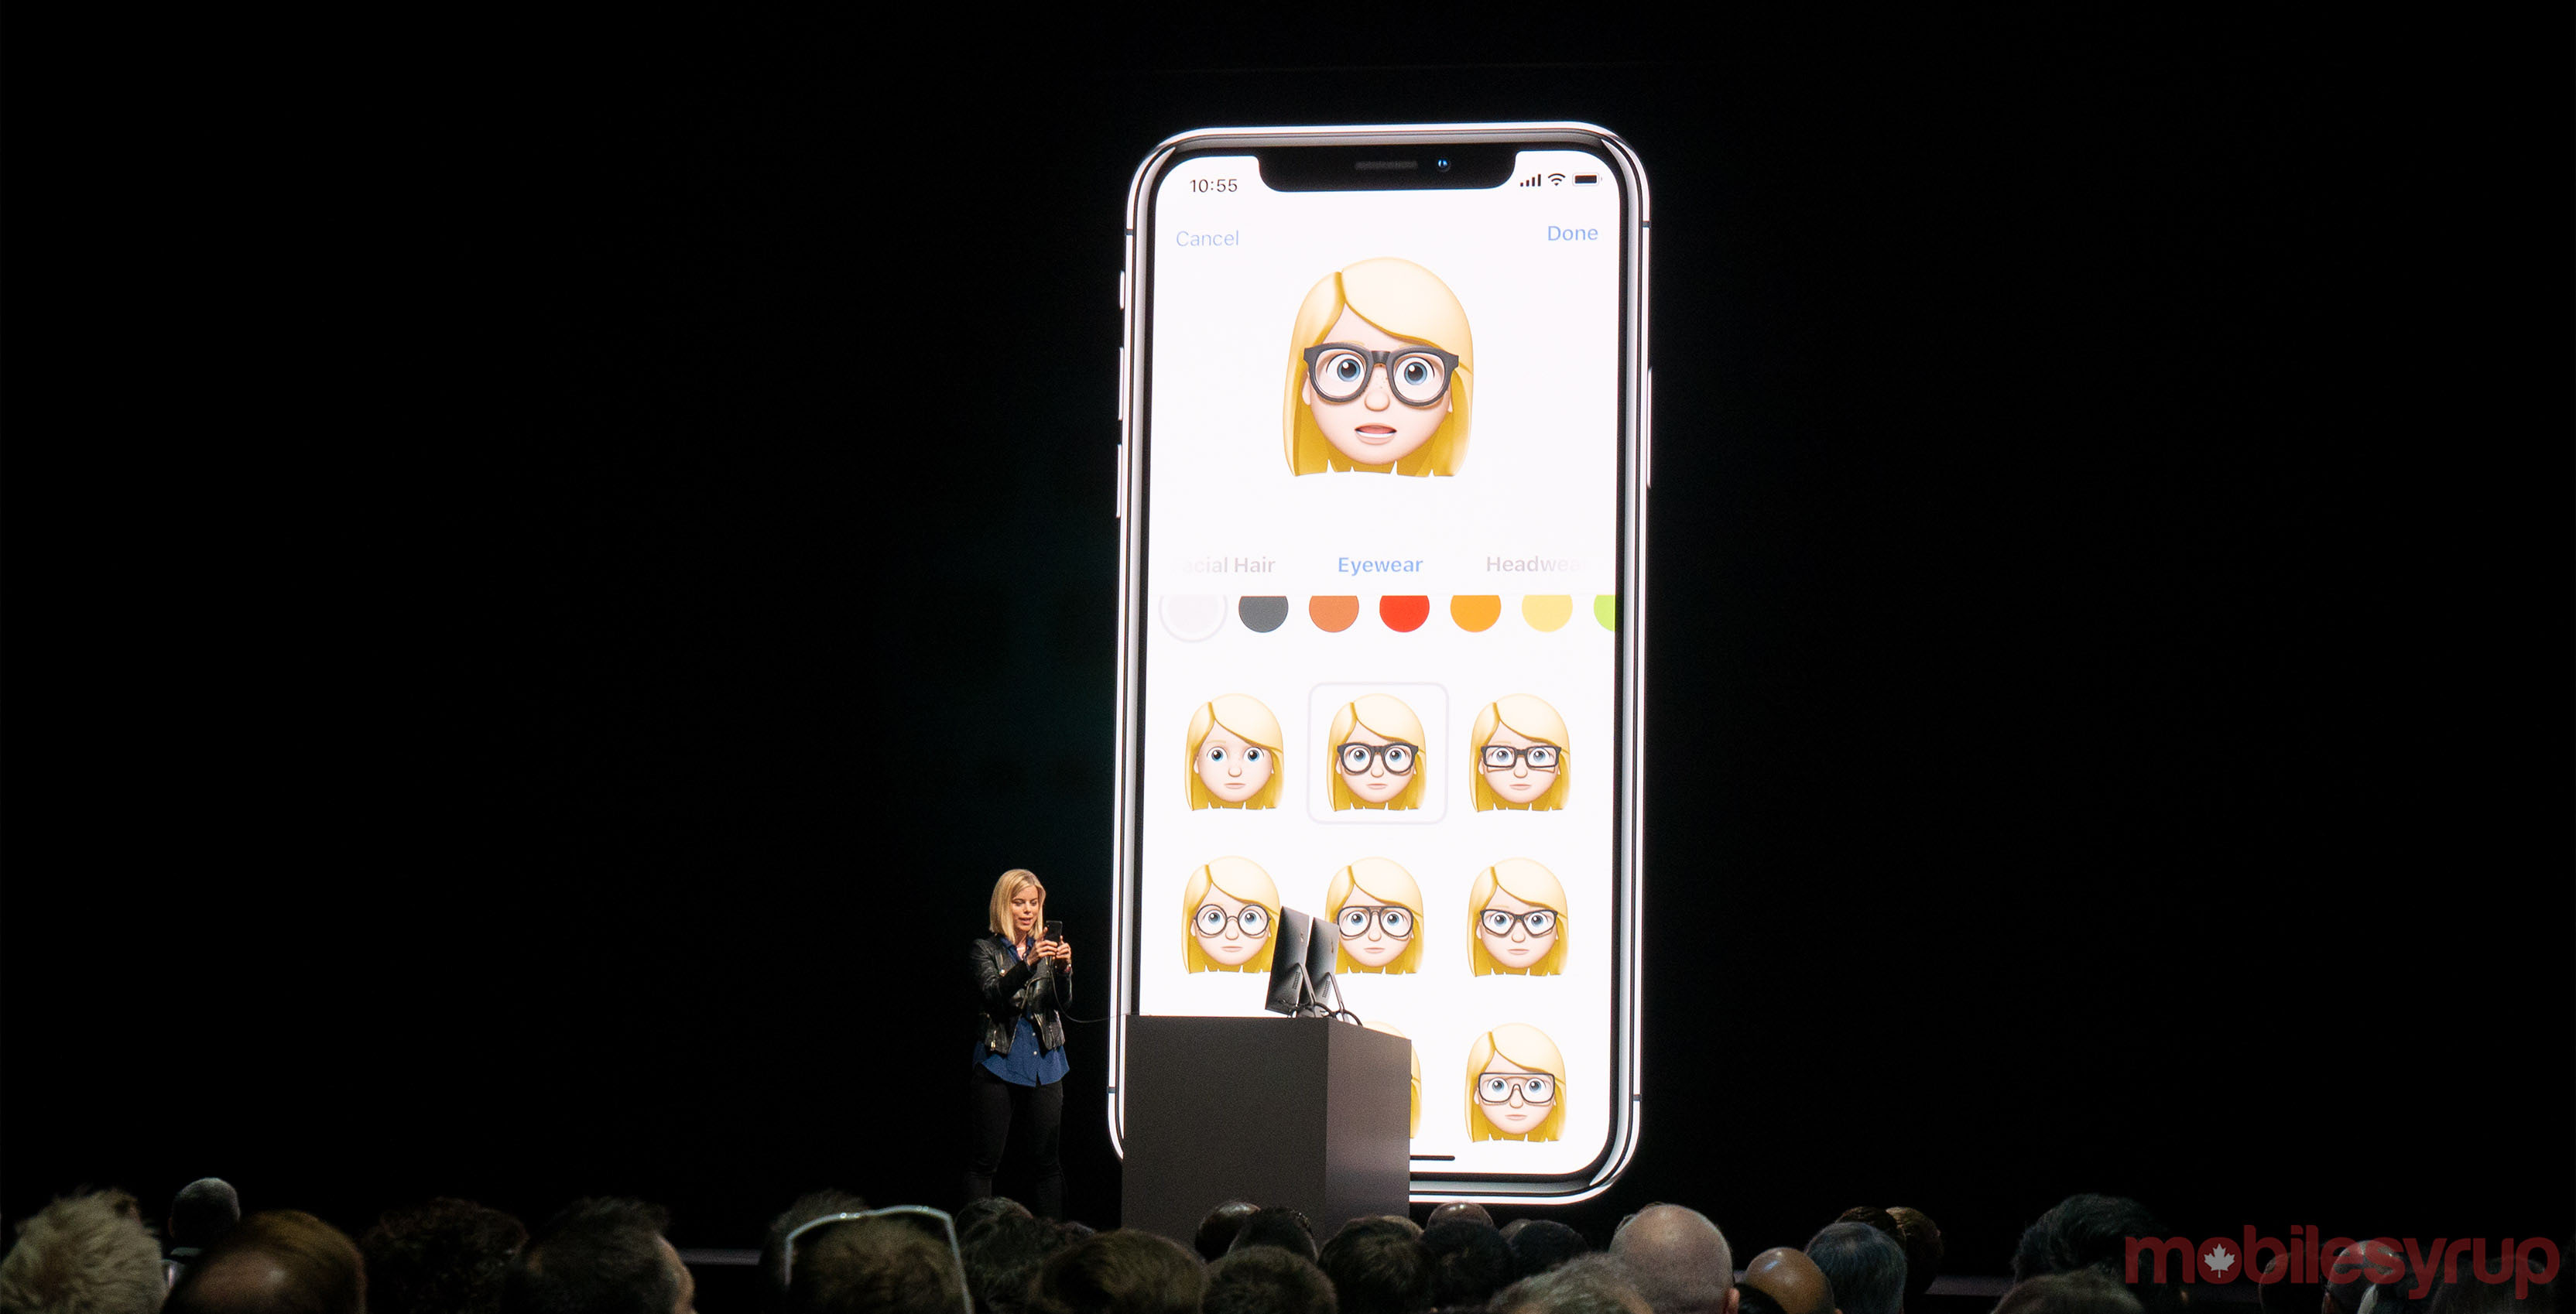 IOS 12 quietly brings multi-user support to Face ID